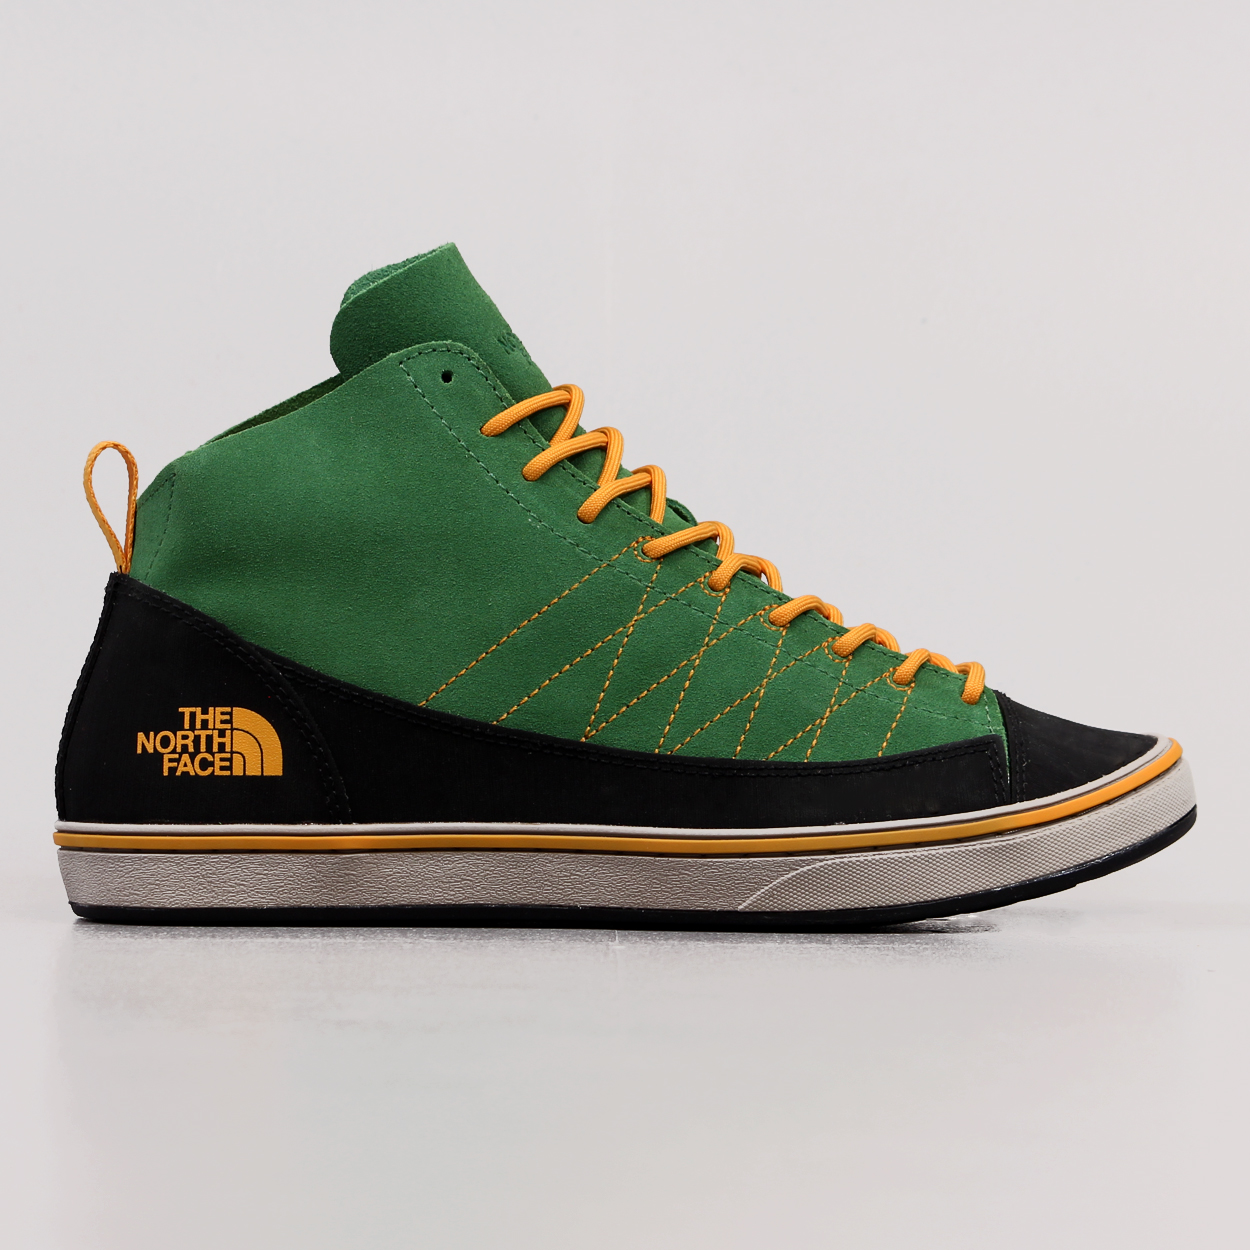 Shoes The North Face Mens Approach Mid Shoes Sullivan Green Brushfire Orange